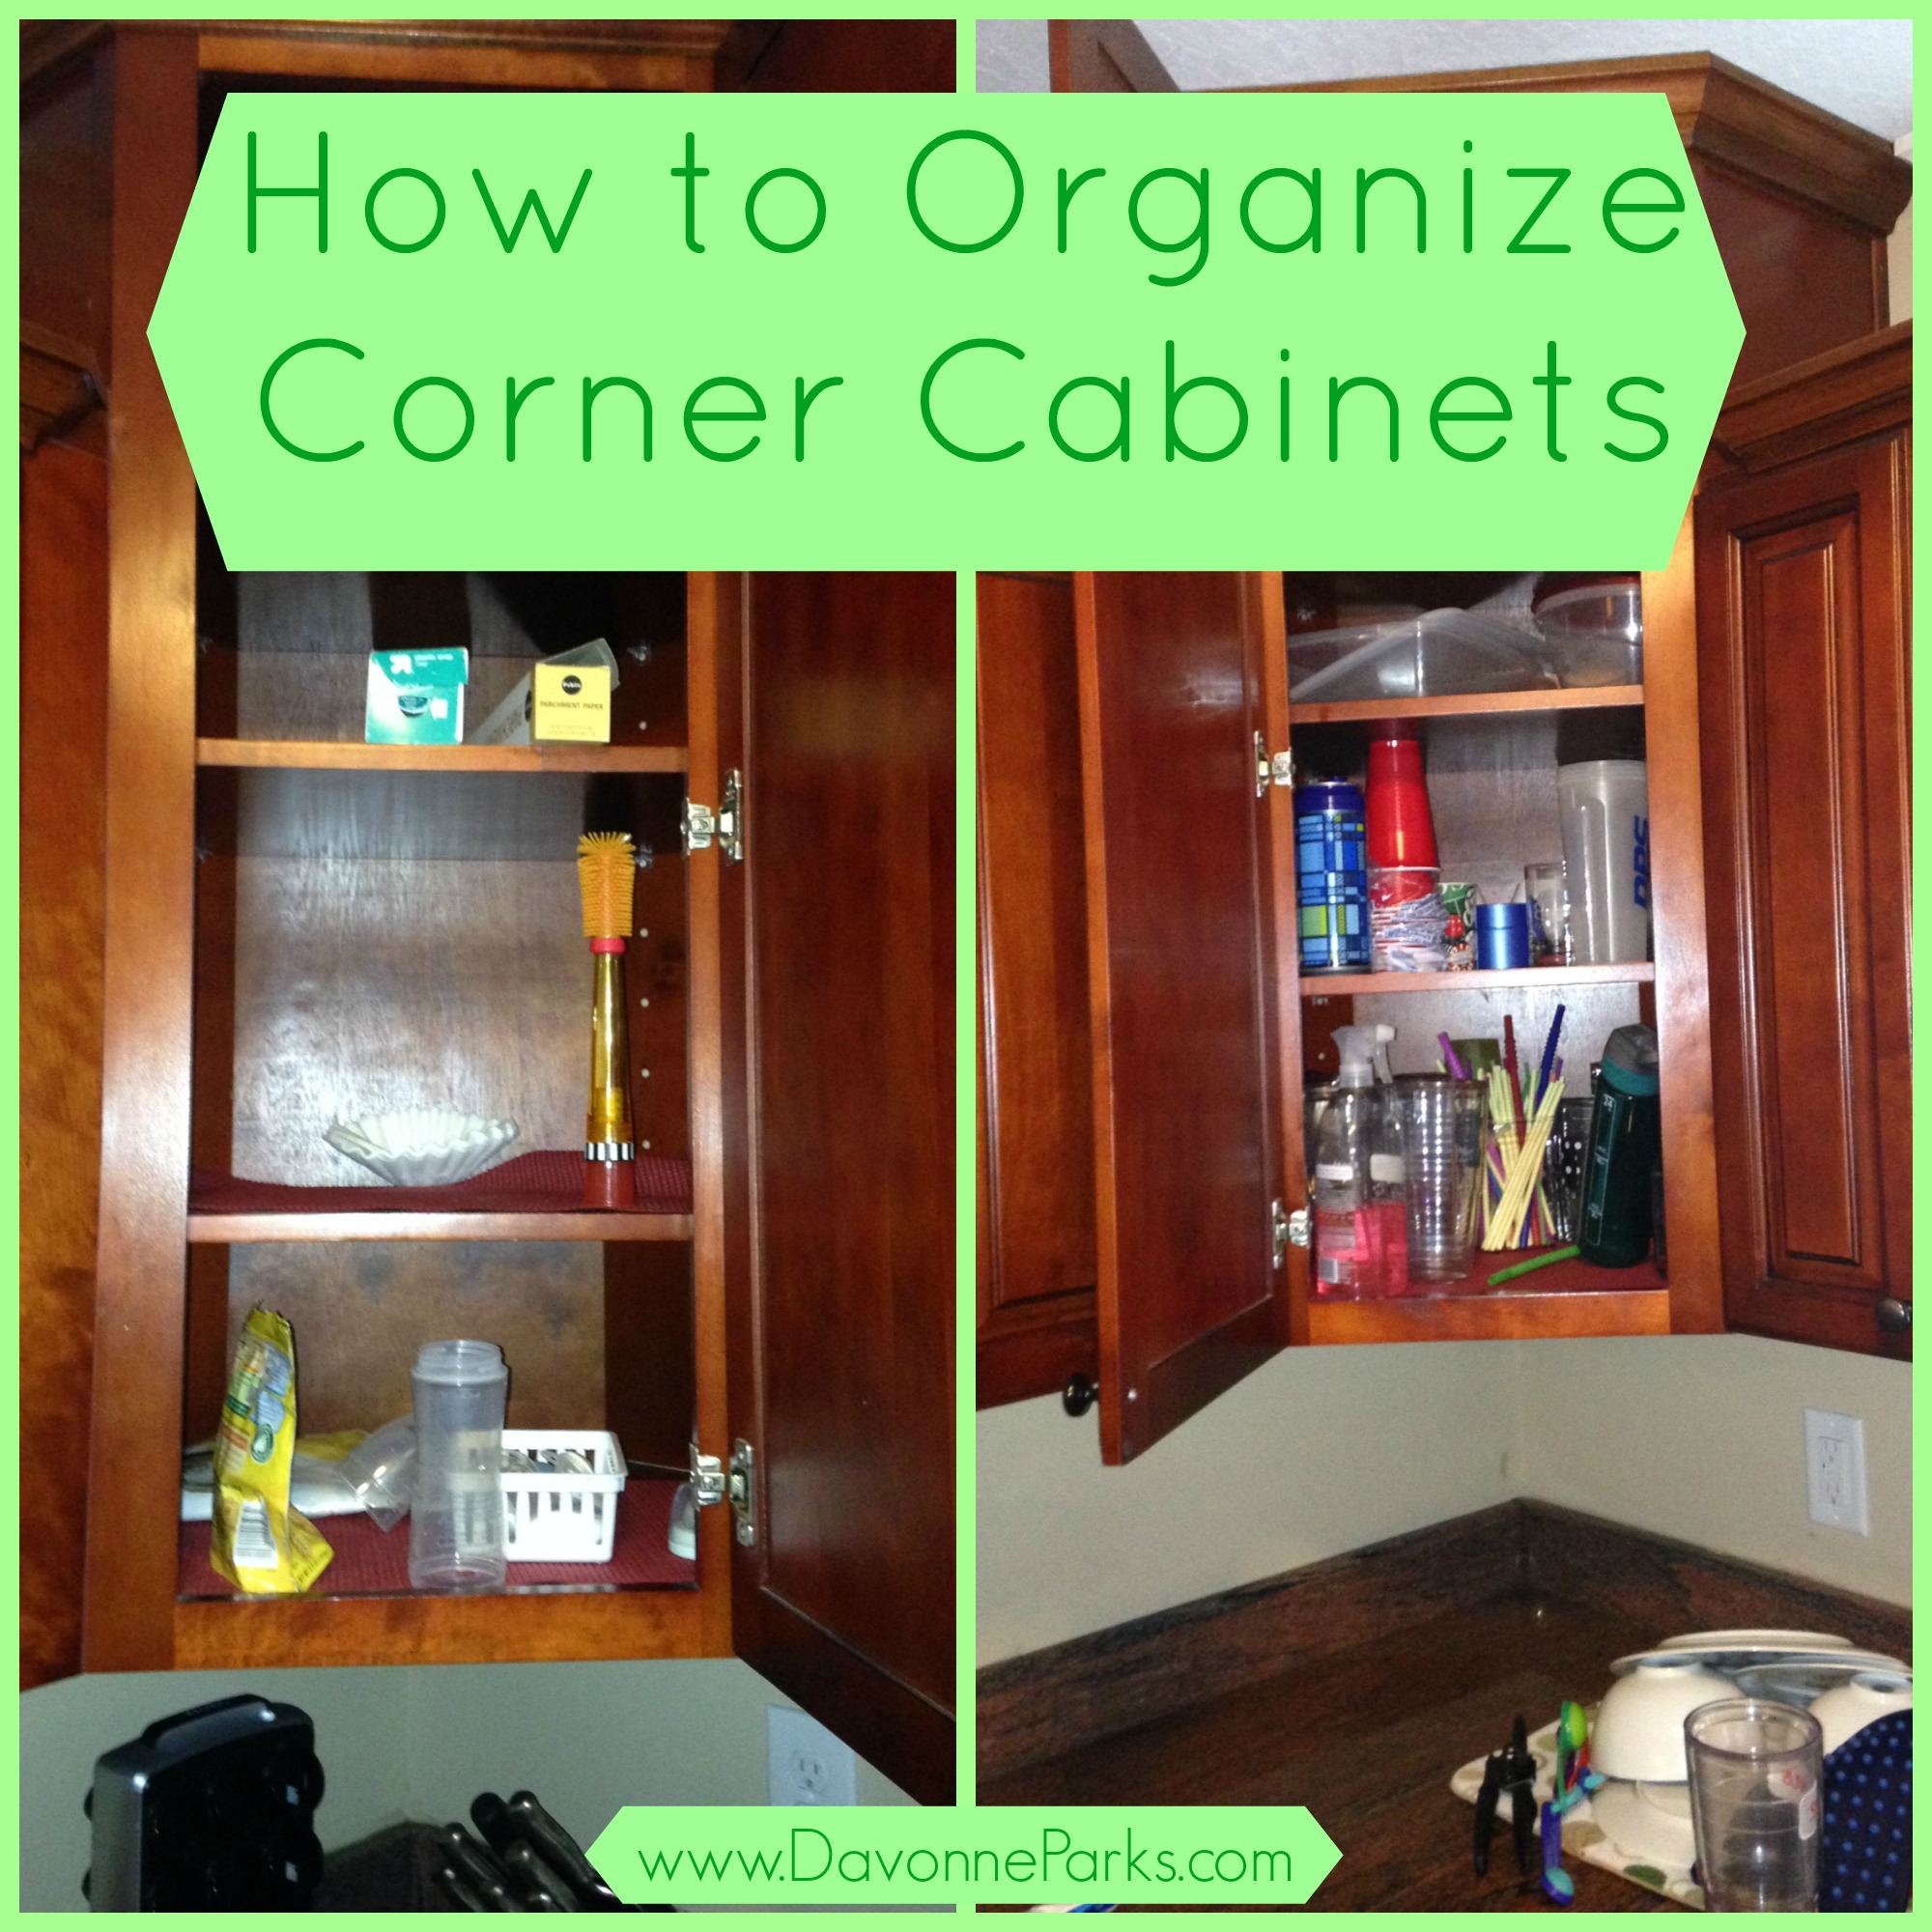 Kitchen Cabinets Organizing Ideas: How To Organize Corner Cabinets